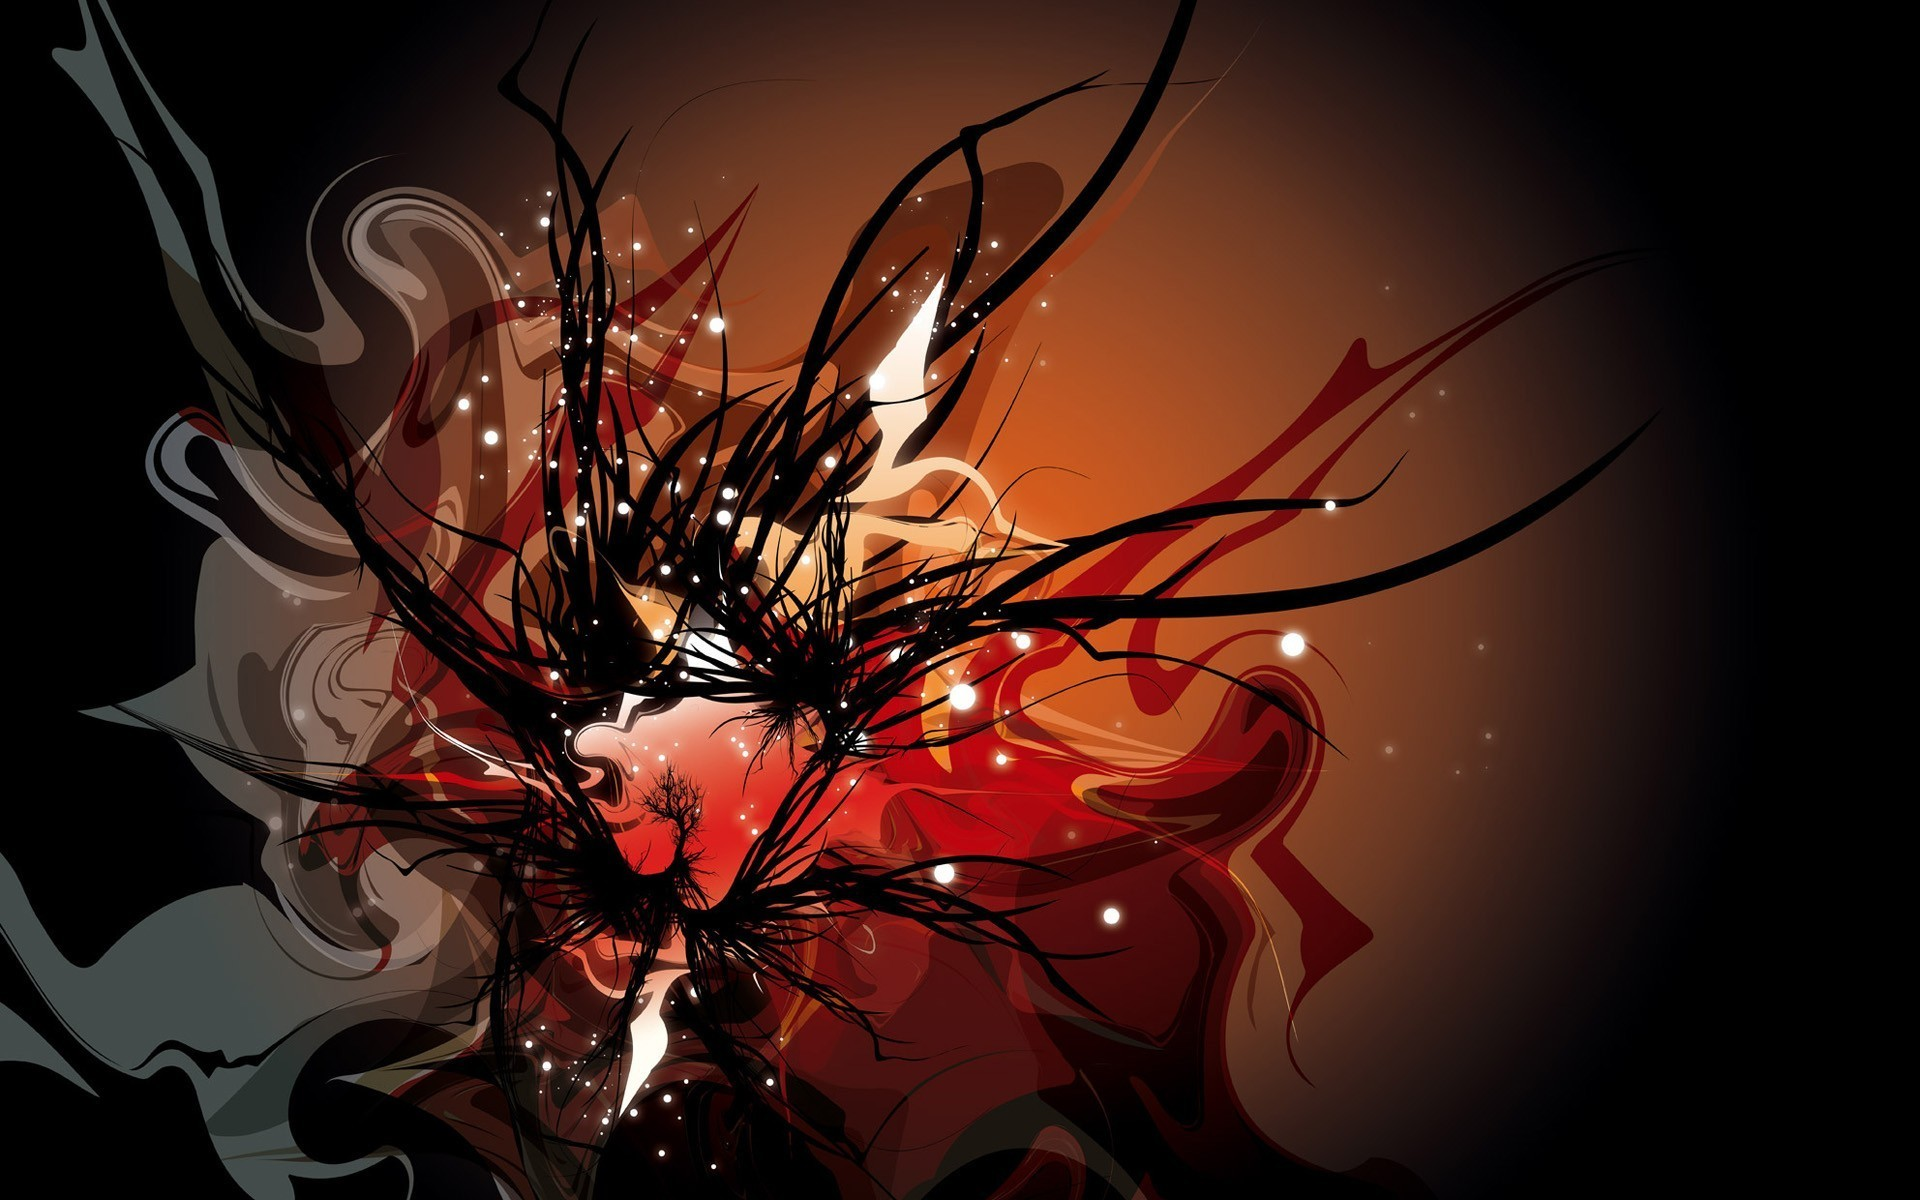 … Wallpaper Hd; Black White And Red